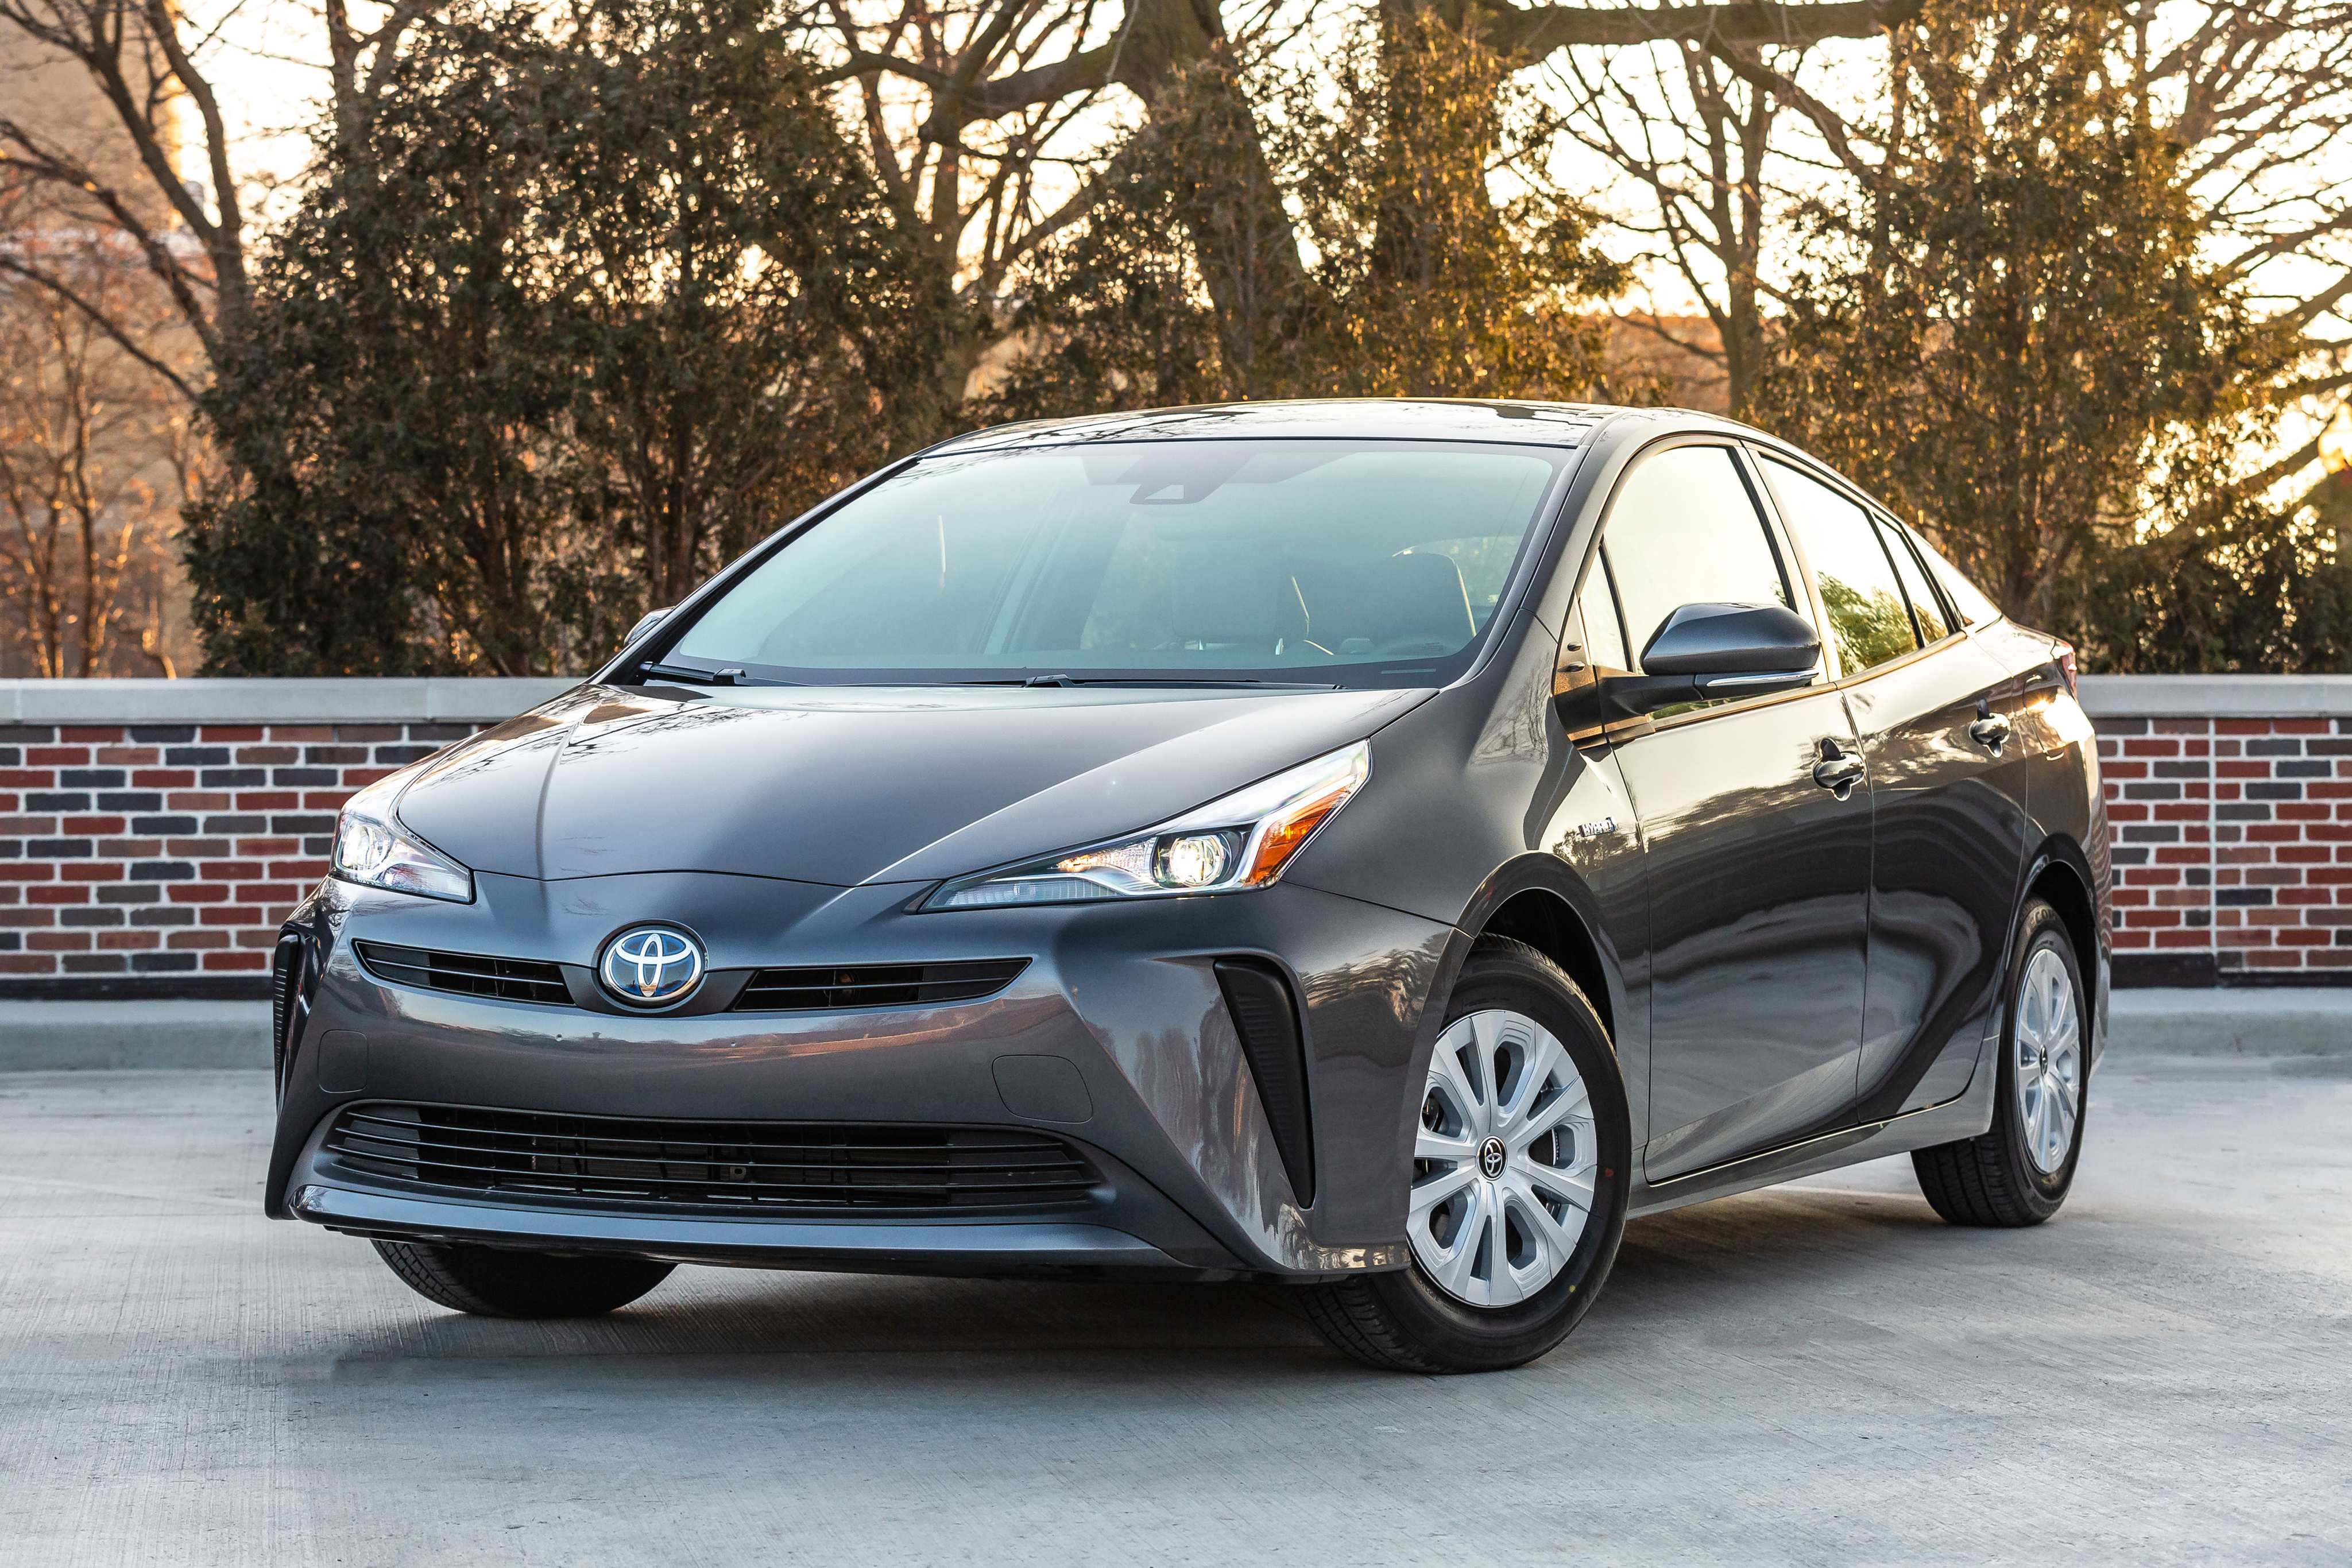 48 Great 2019 Toyota Prius Wallpaper with 2019 Toyota Prius